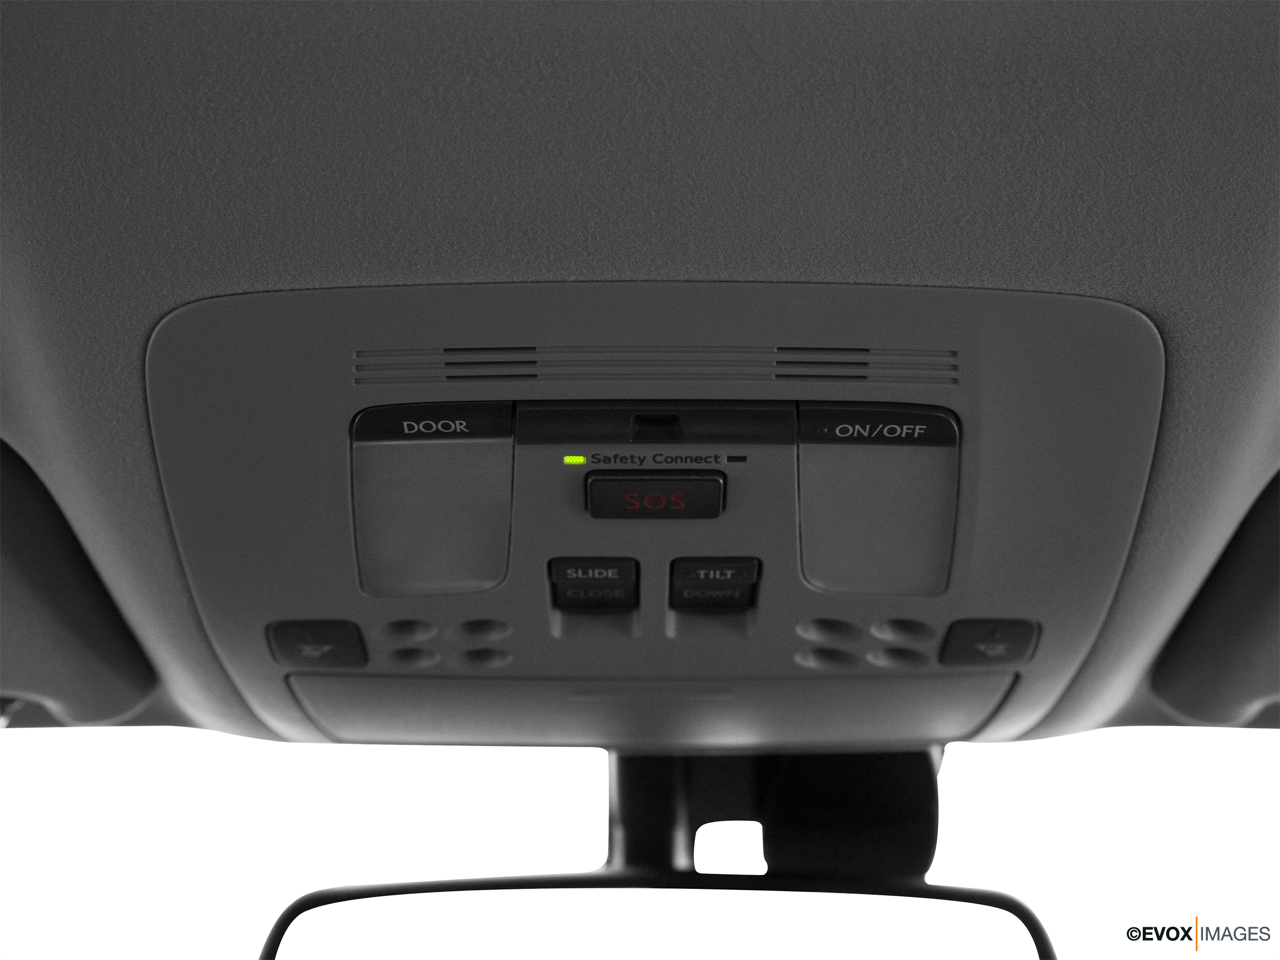 2010 Lexus IS 250 IS250 Courtesy lamps/ceiling controls.